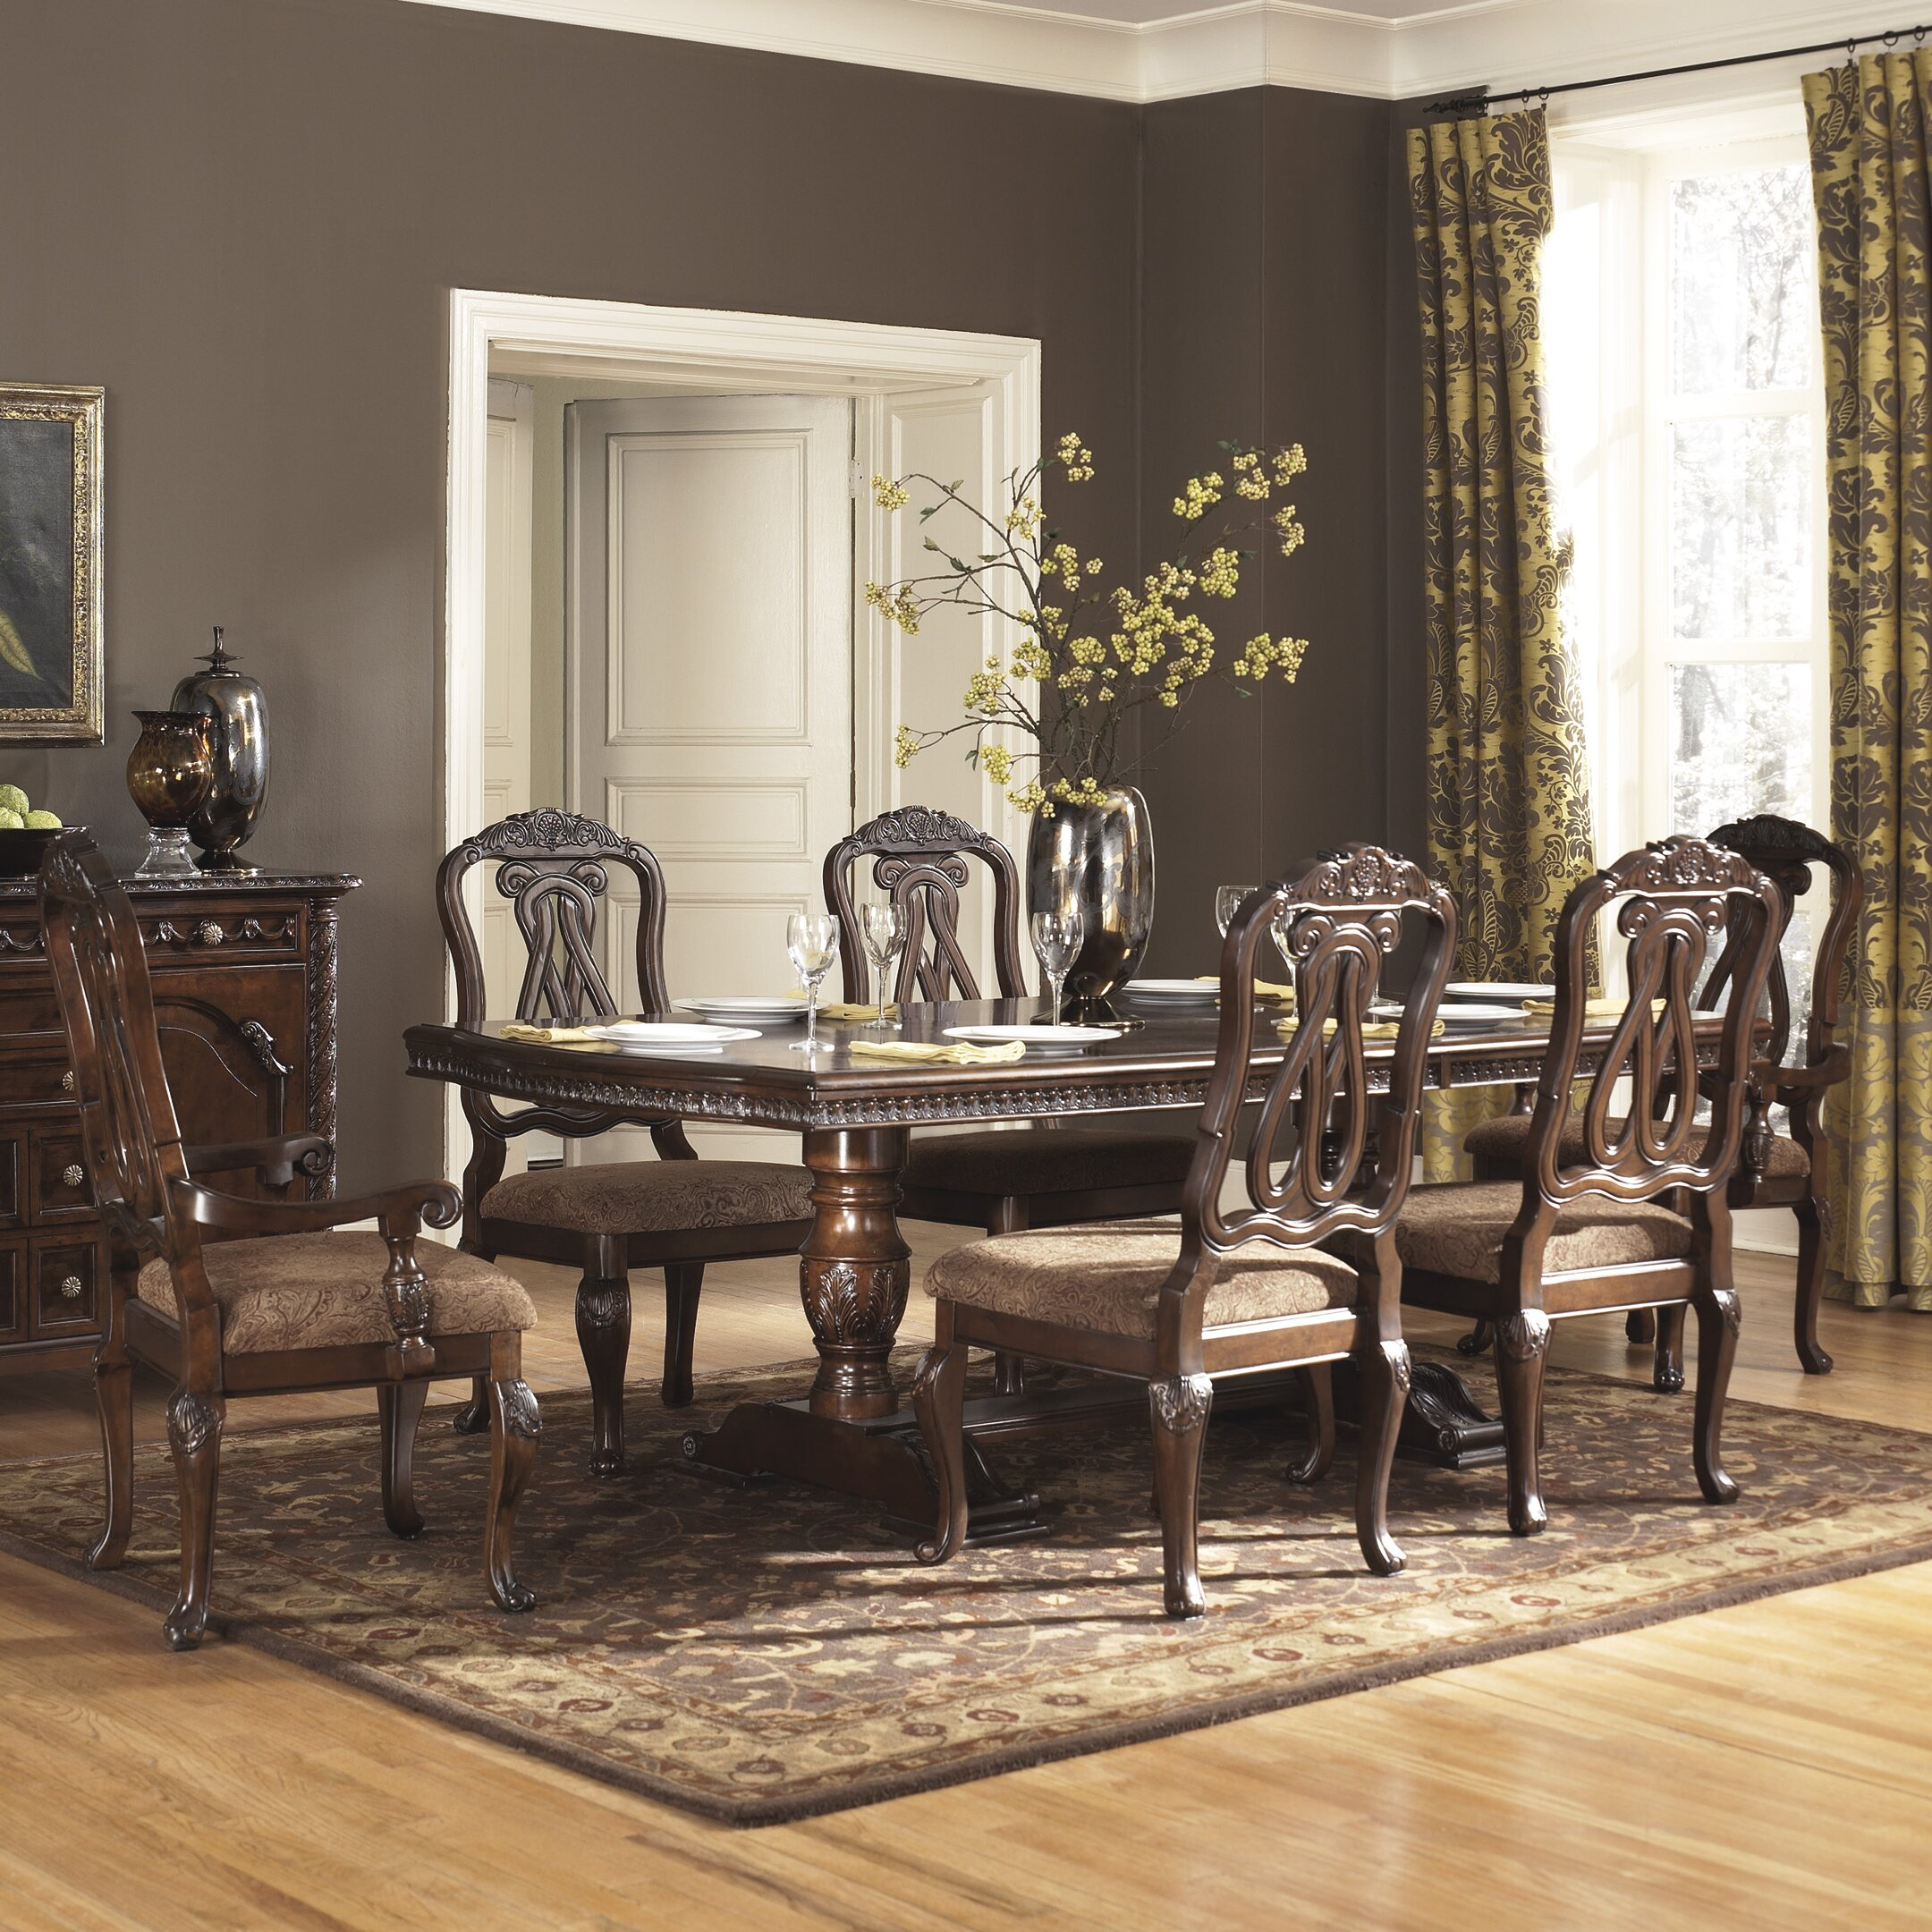 Signature design by ashley north shore 7 piece dining set for Ashley furniture dining room sets design